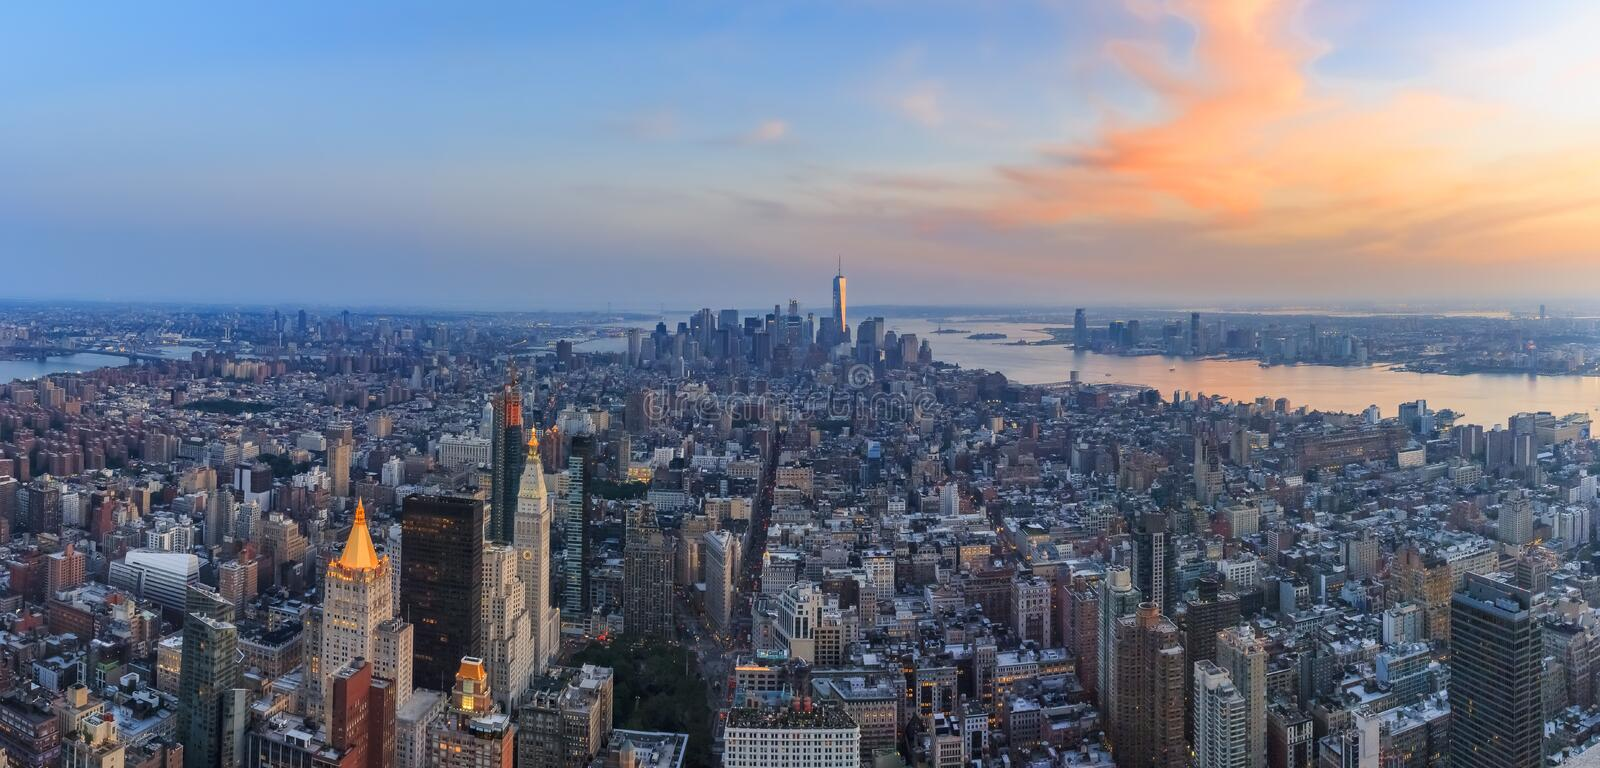 New York Downtown and lower Manhattan skyline view with the One World Trade Center skyscraper at sunset. New York , USA - May 31, 2016: Aerial sunset view of stock photography